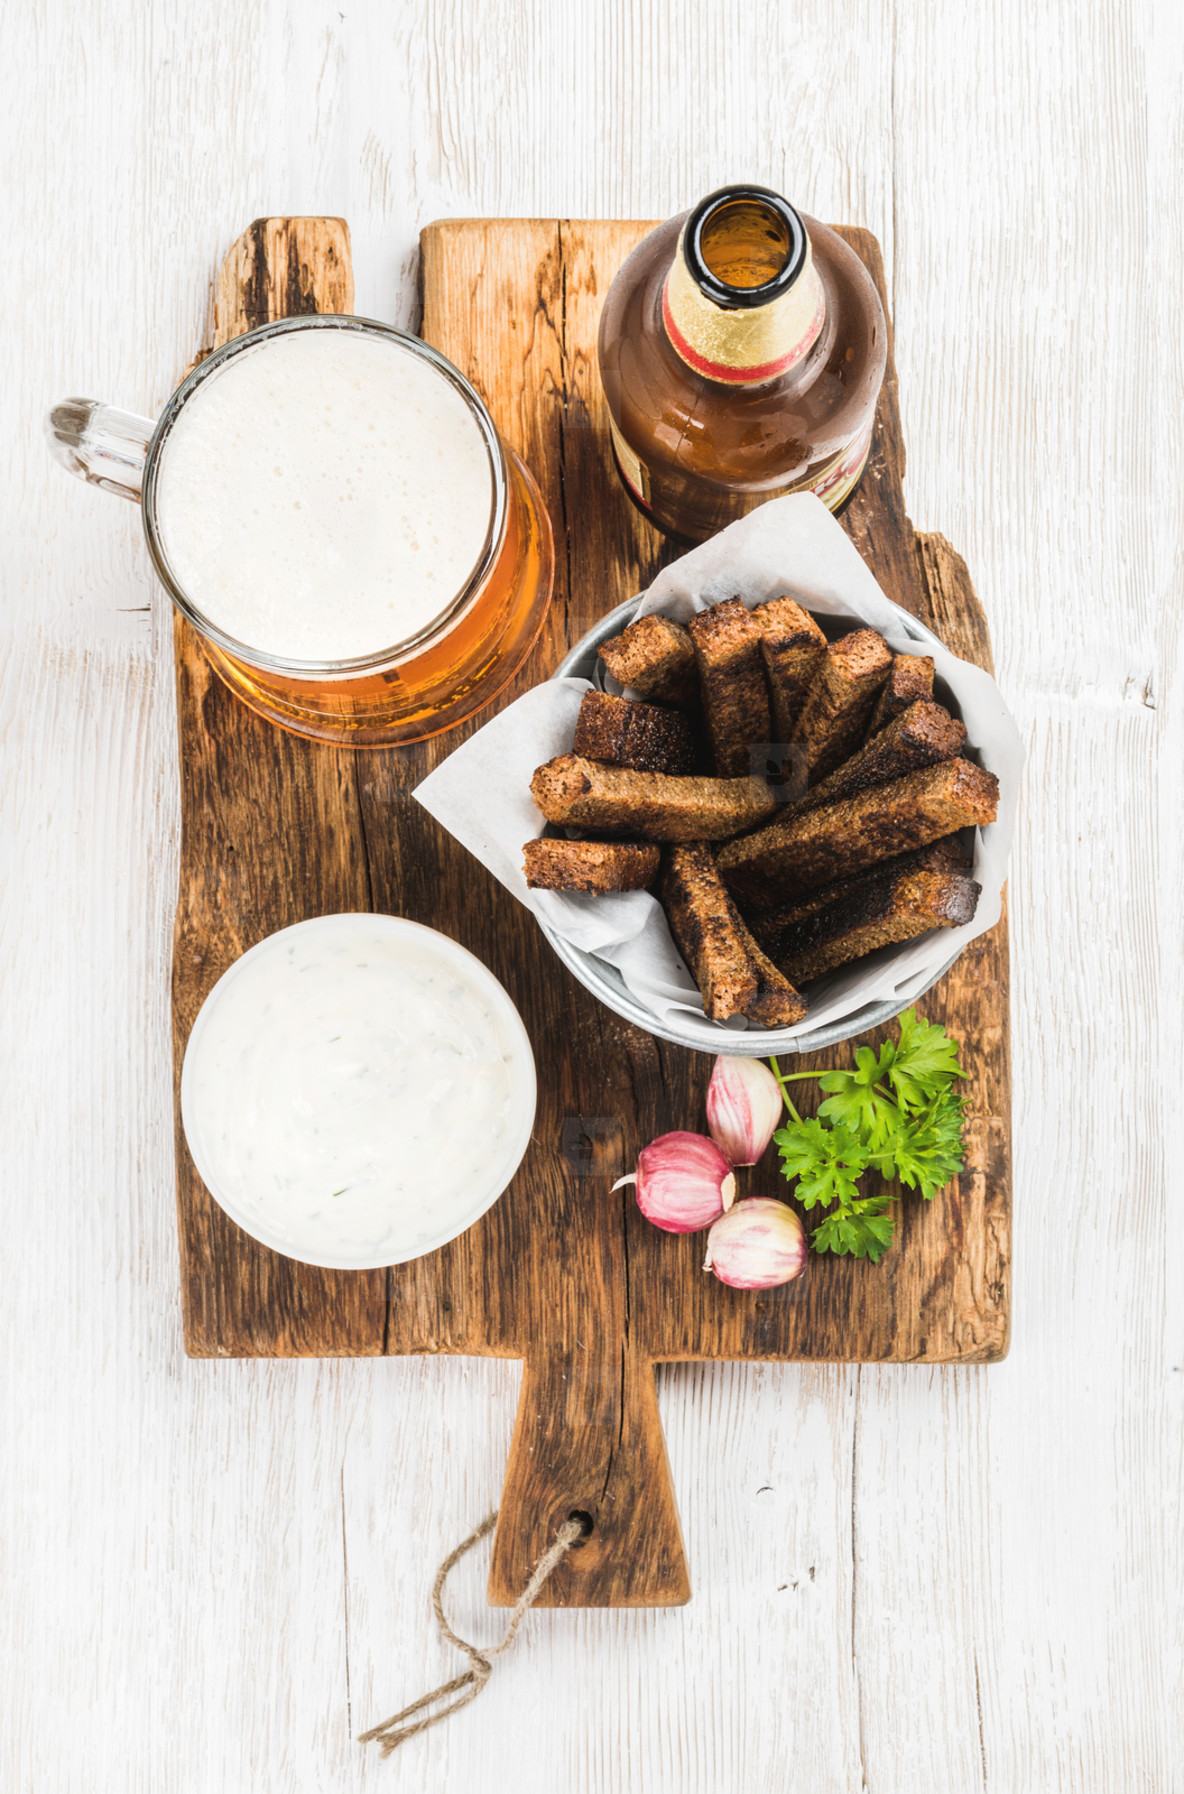 Beer snack set  Pint of pilsener in mug  open glass  bottle  rye bread croutons with garlic cream cheese sauce on rustic wooden board over white painted old  background